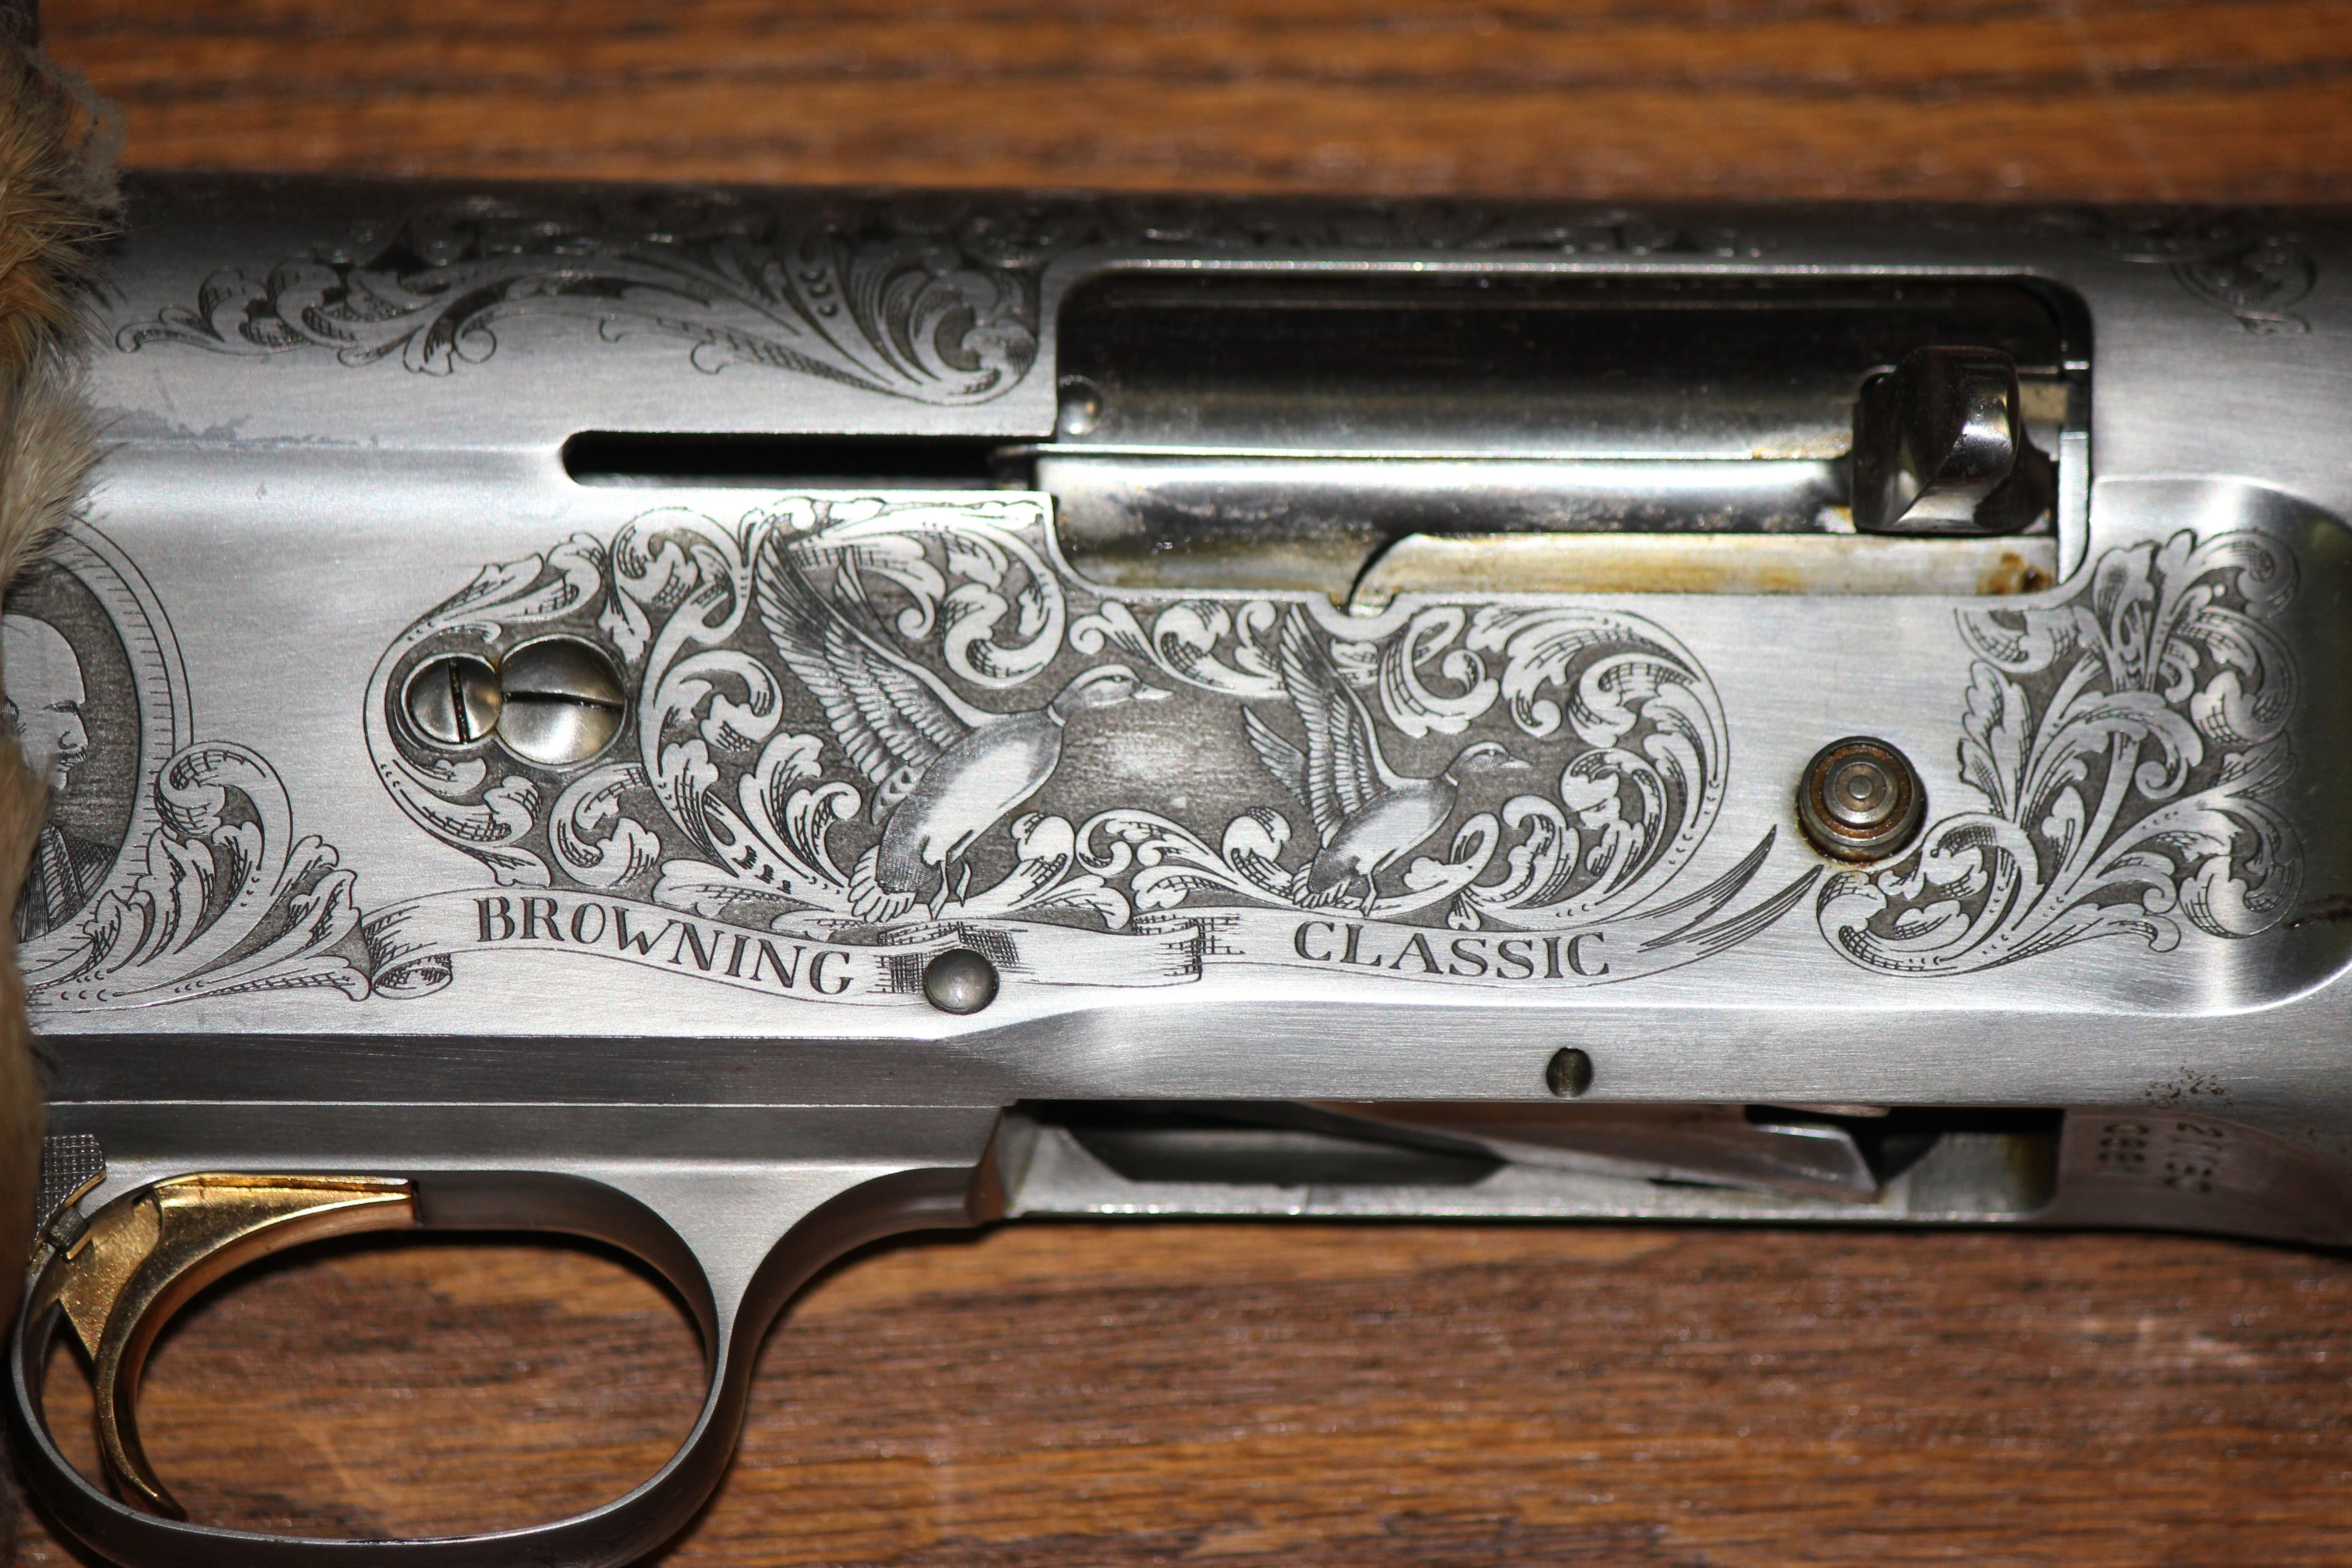 This is a browning auto 5 classic all hand engraved by fn this is a browning auto 5 classic all hand engraved by fn brownings master engravers in pooptronica